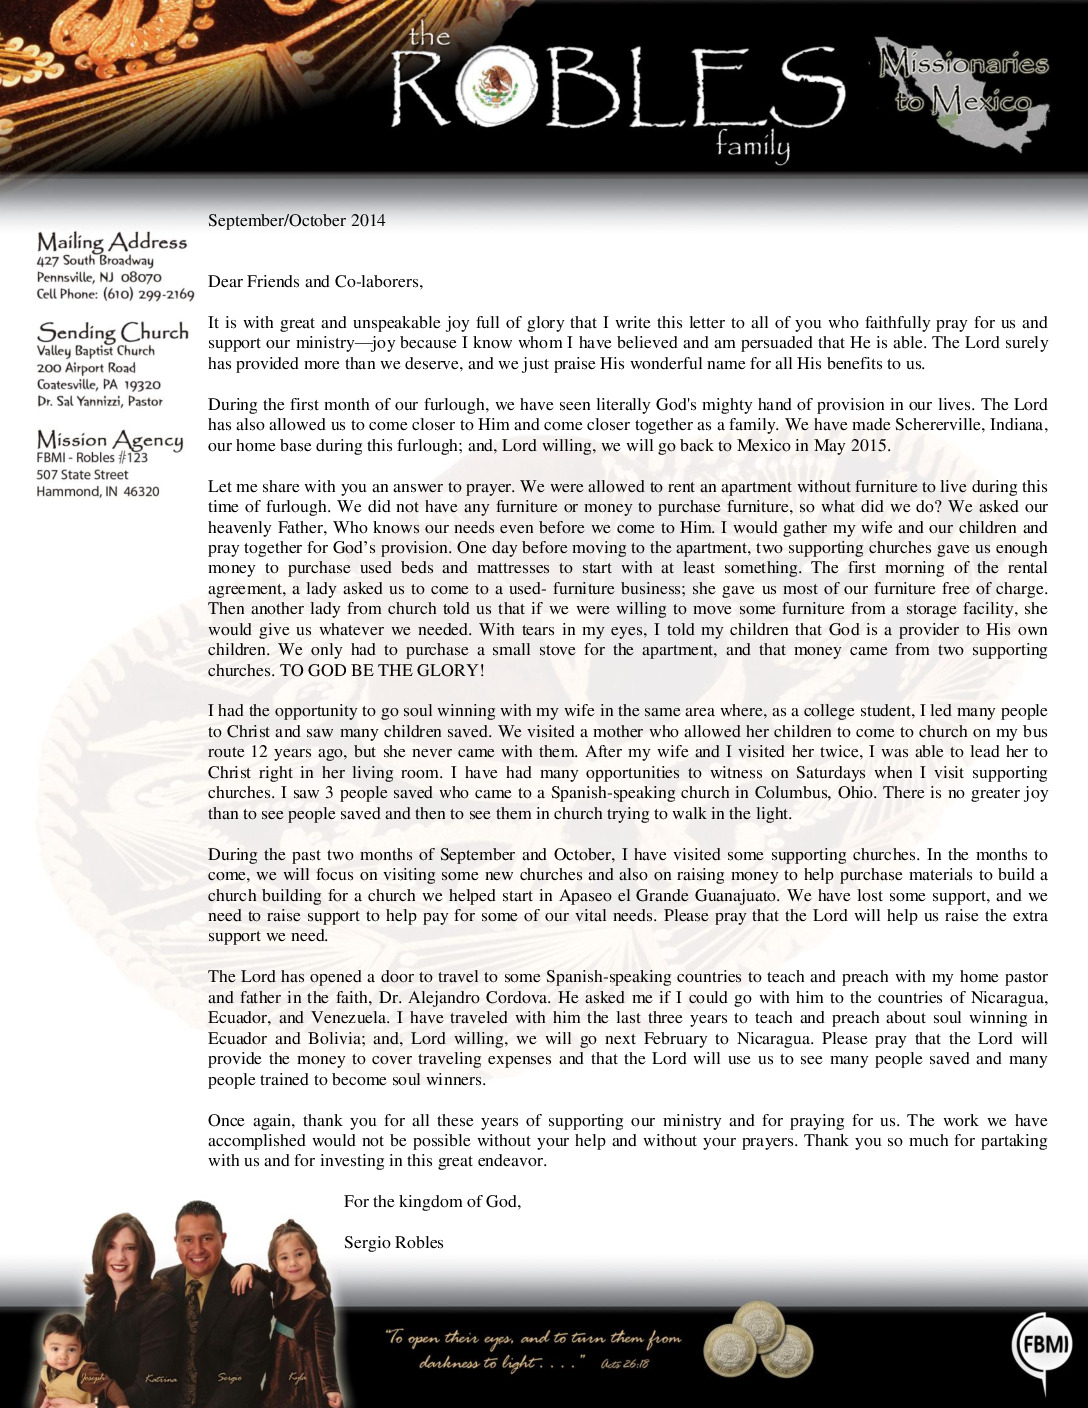 thumbnail of Sergio Robles Sep-Oct 2014 Prayer Letter